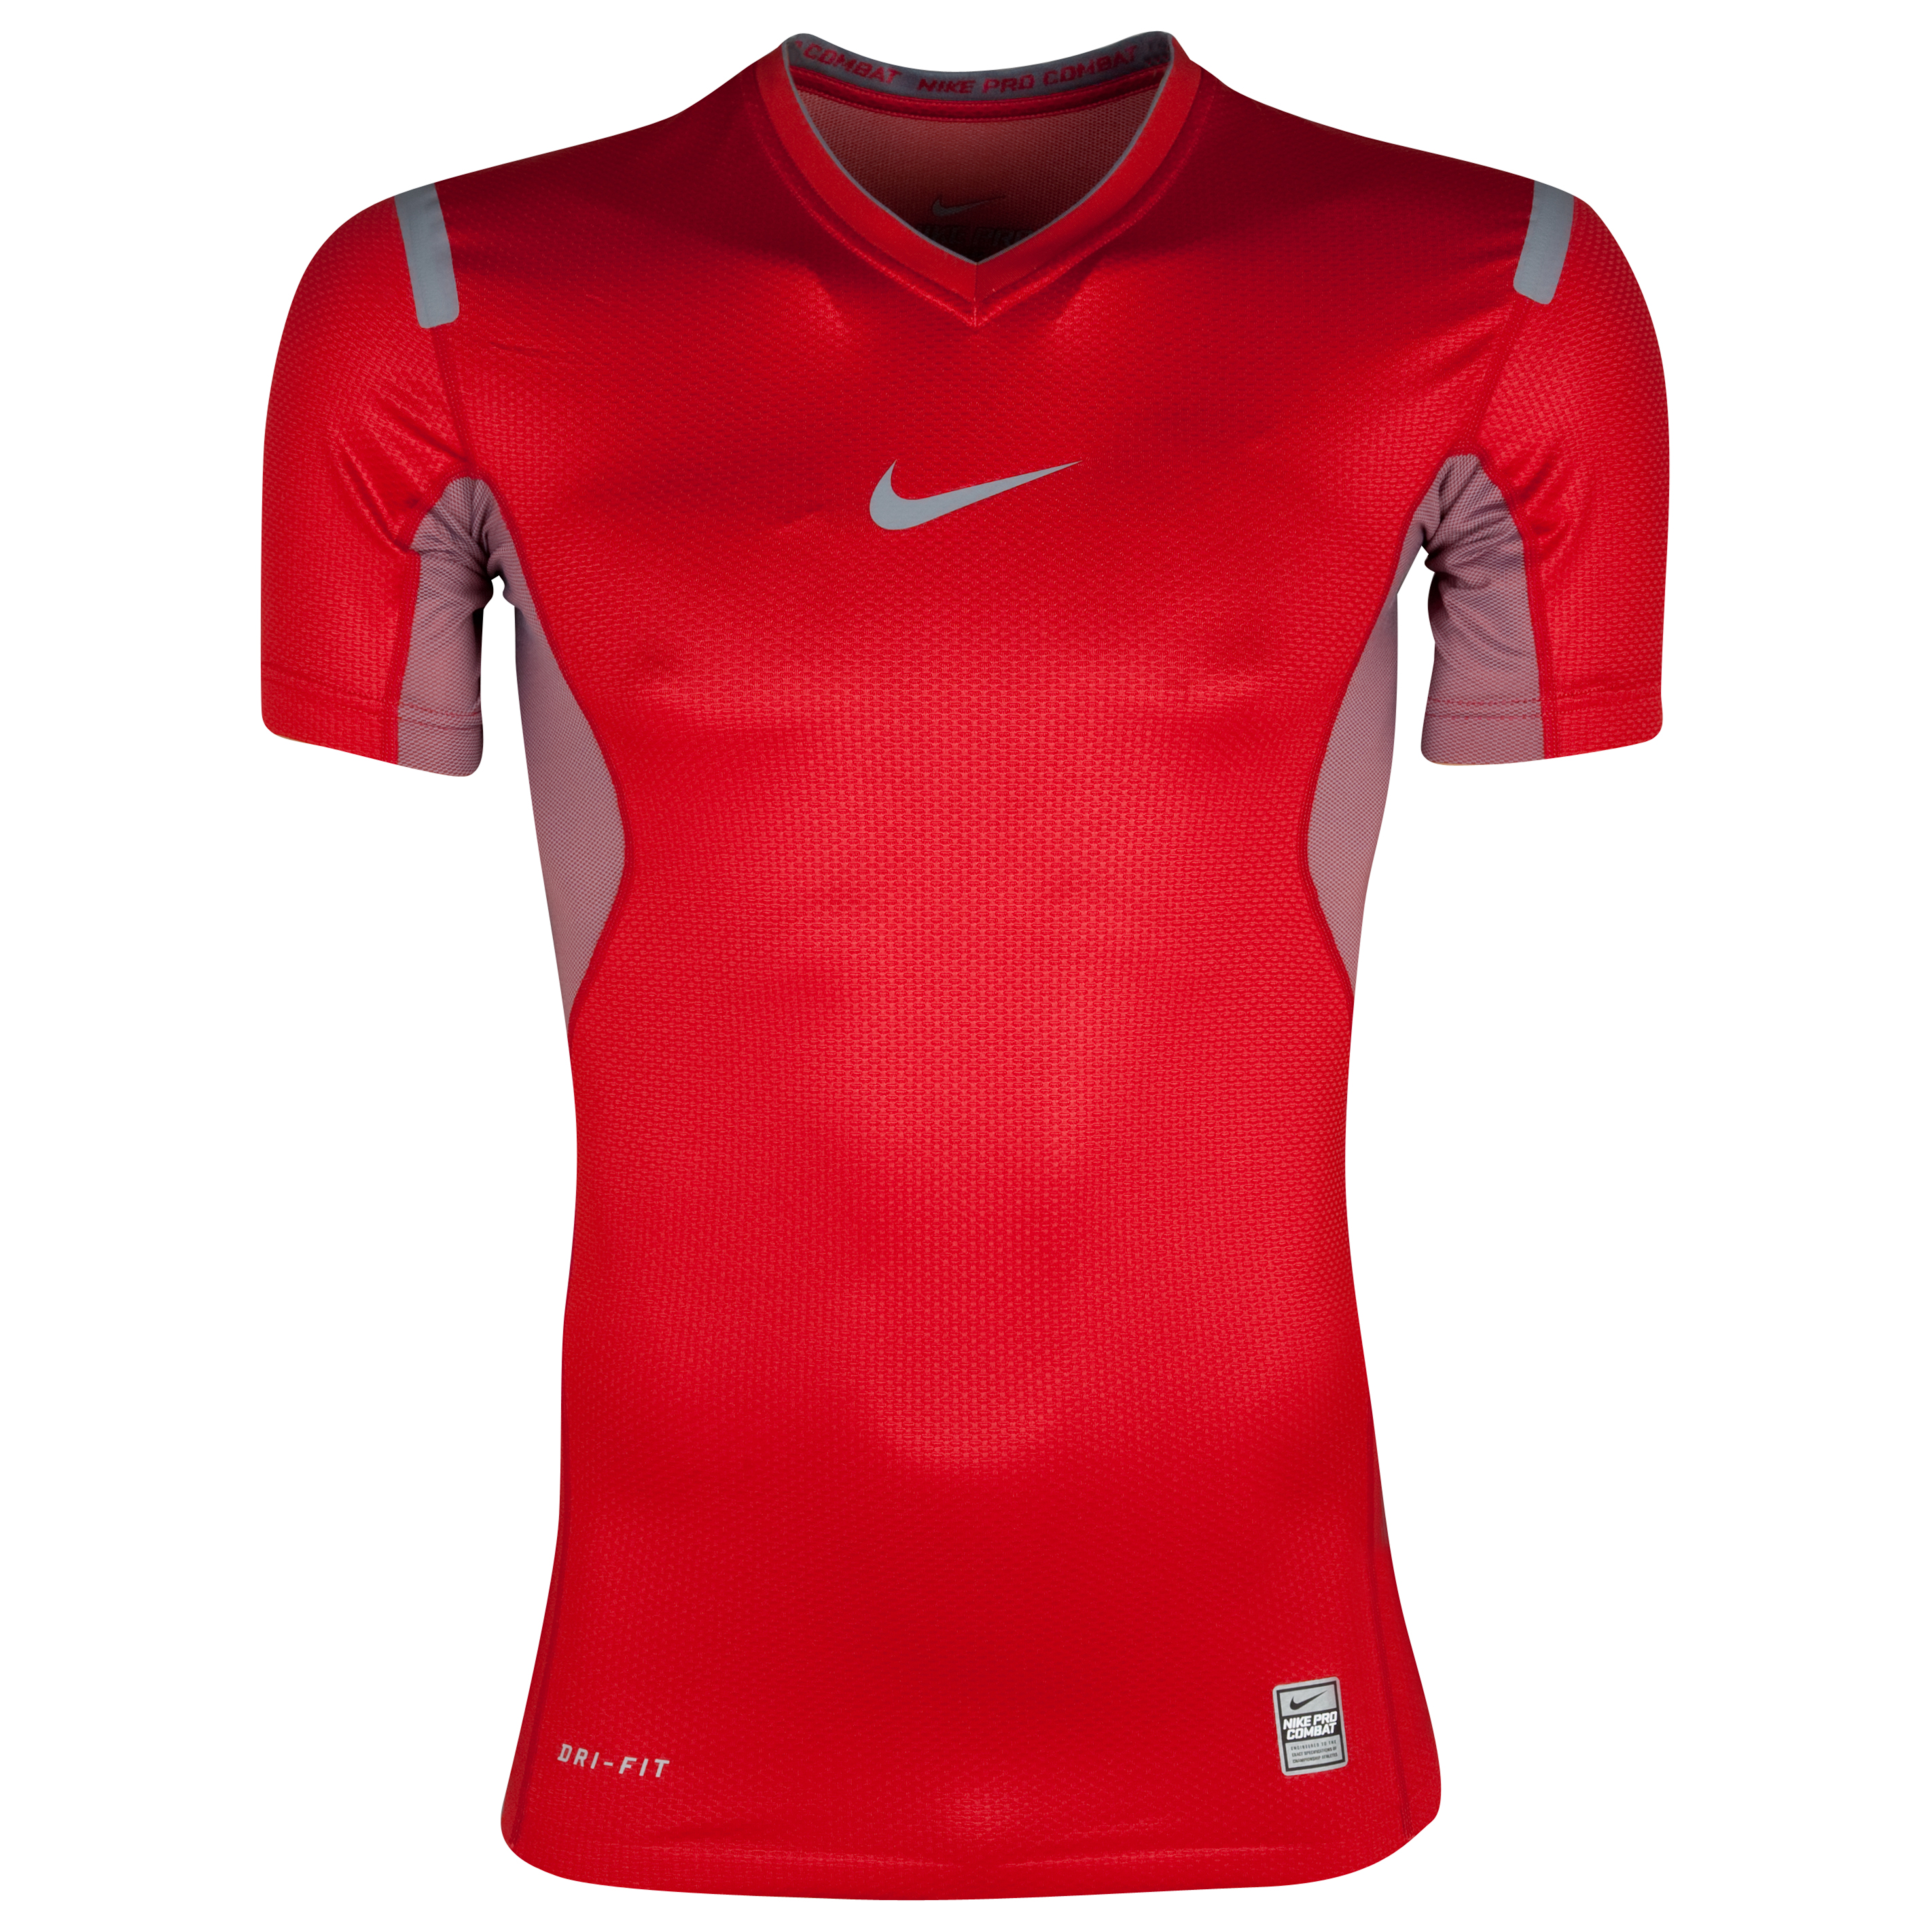 Nike Pro Vapor Ss V-Neck Top Nb - Varsity Red/Cool Grey